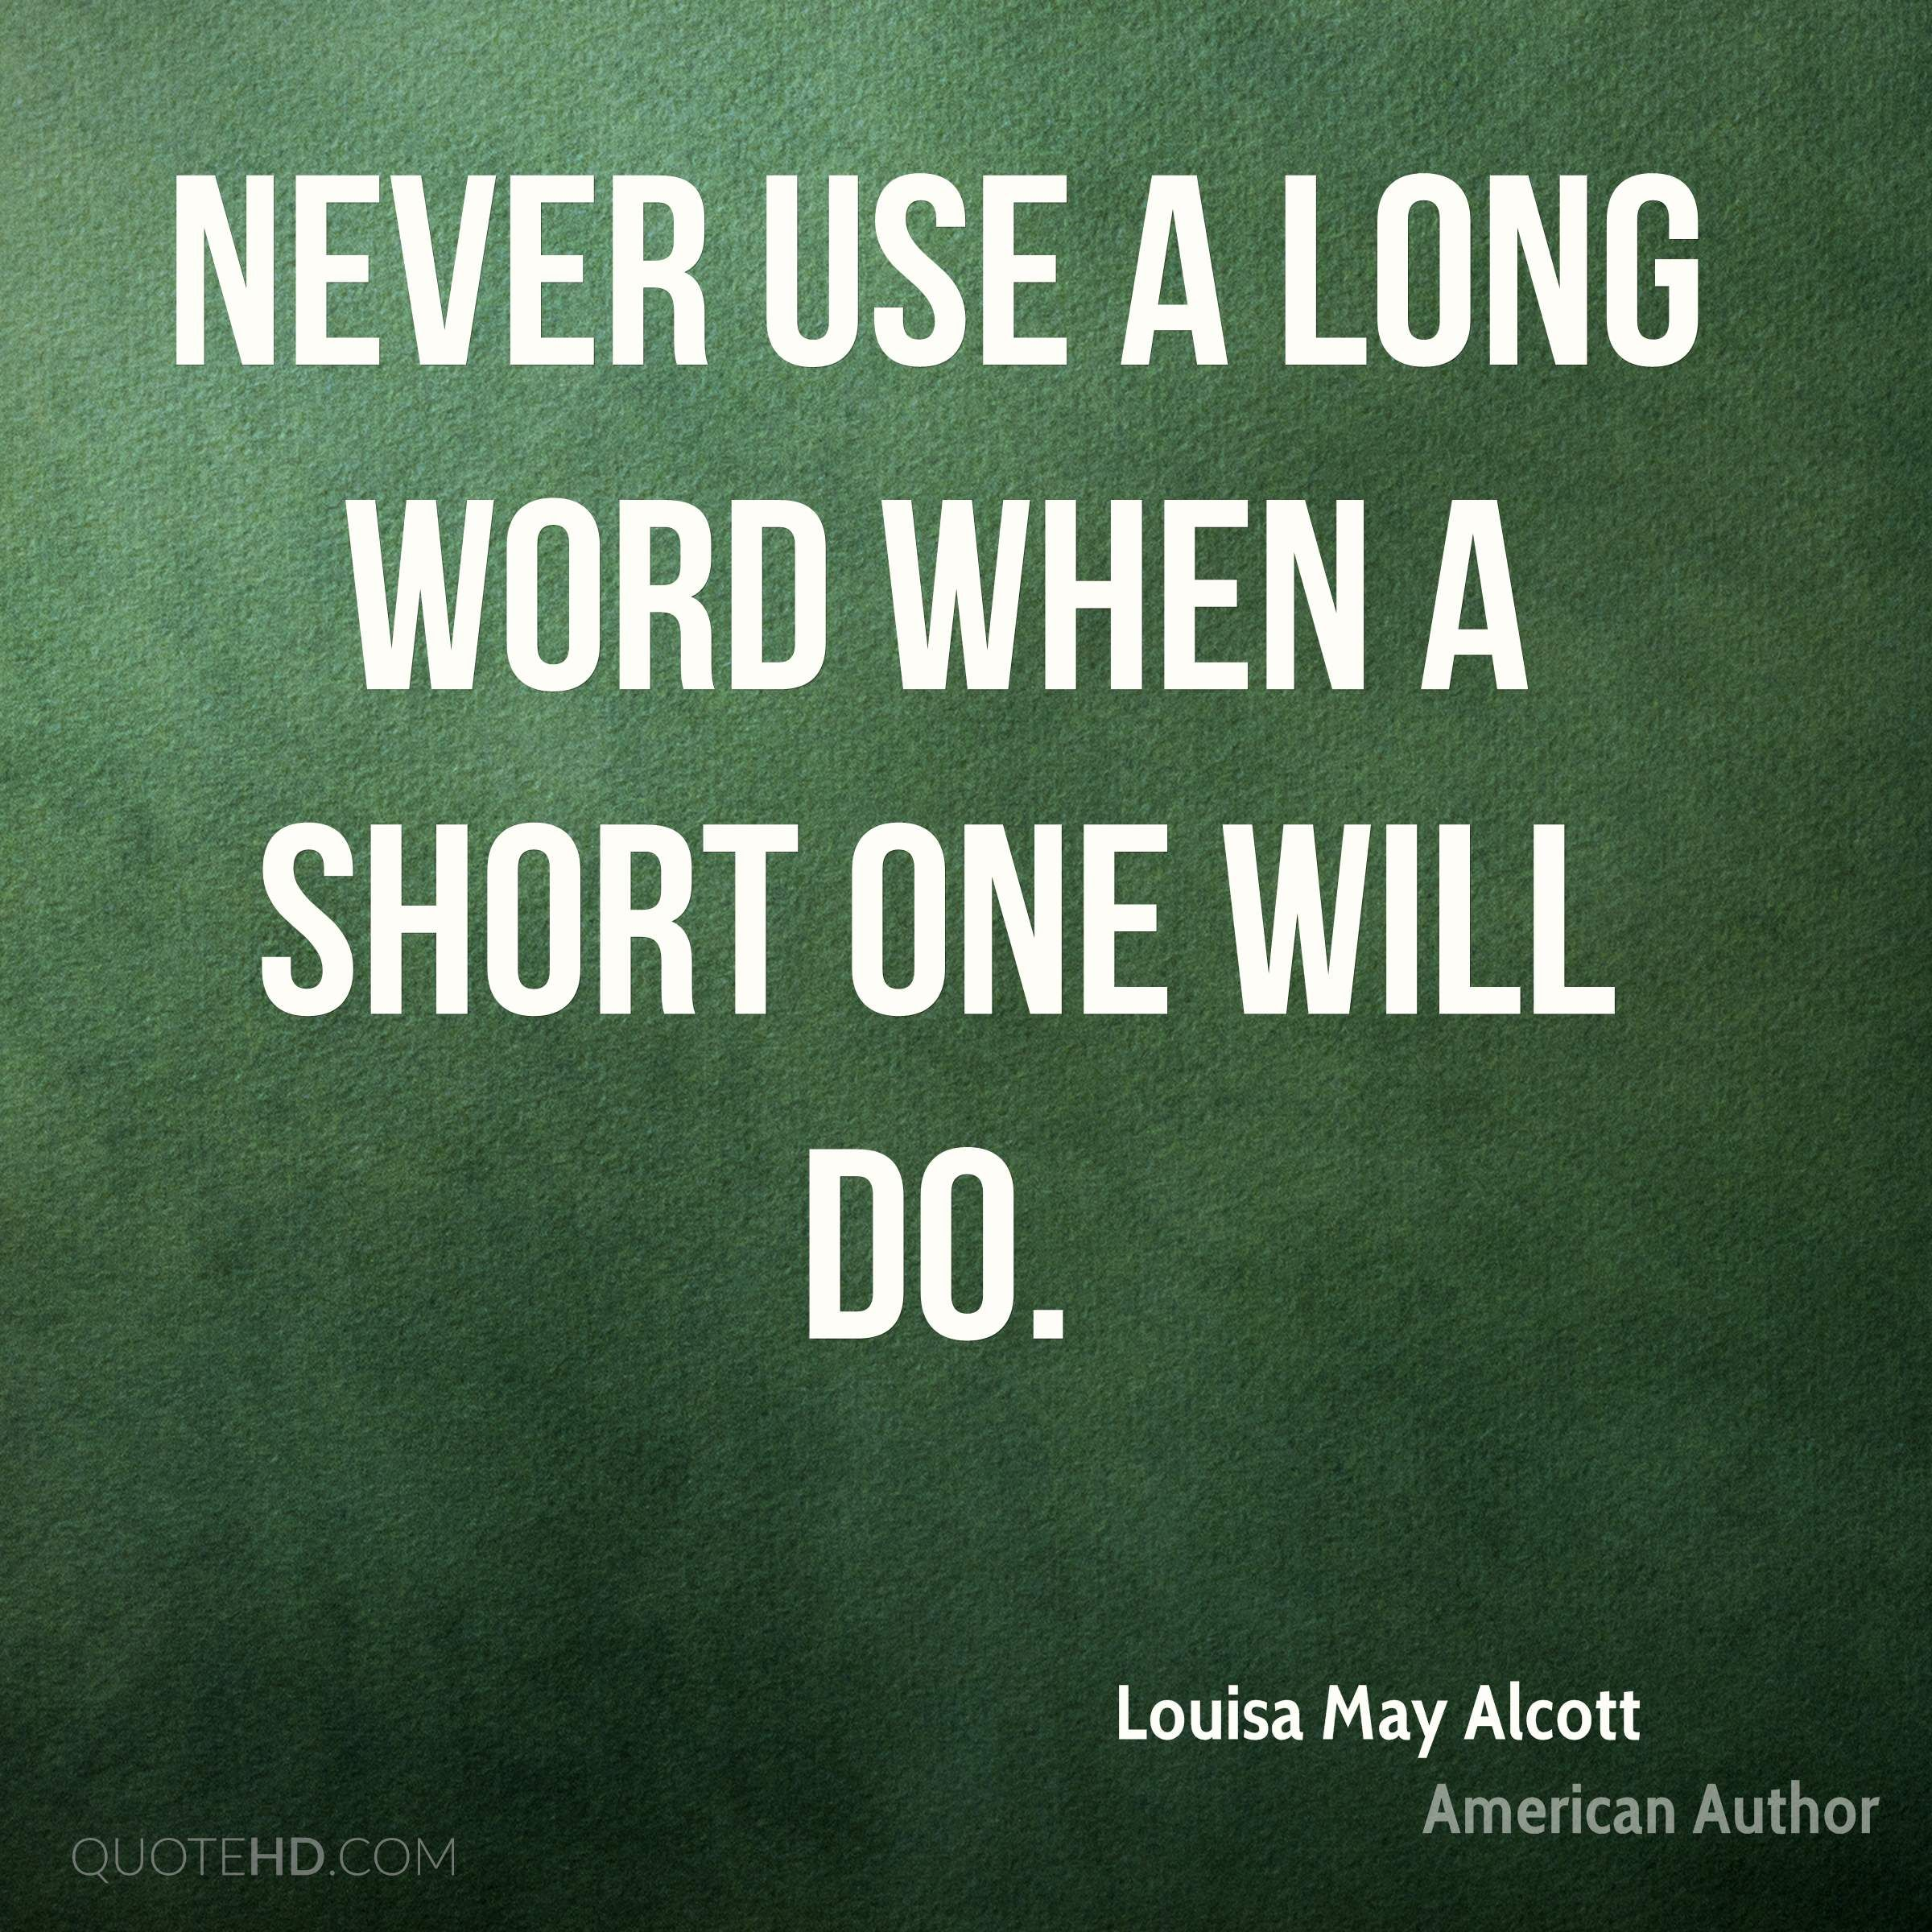 Louisa May Alcott Quotes Quotehd Words Of Wisdom Quotes